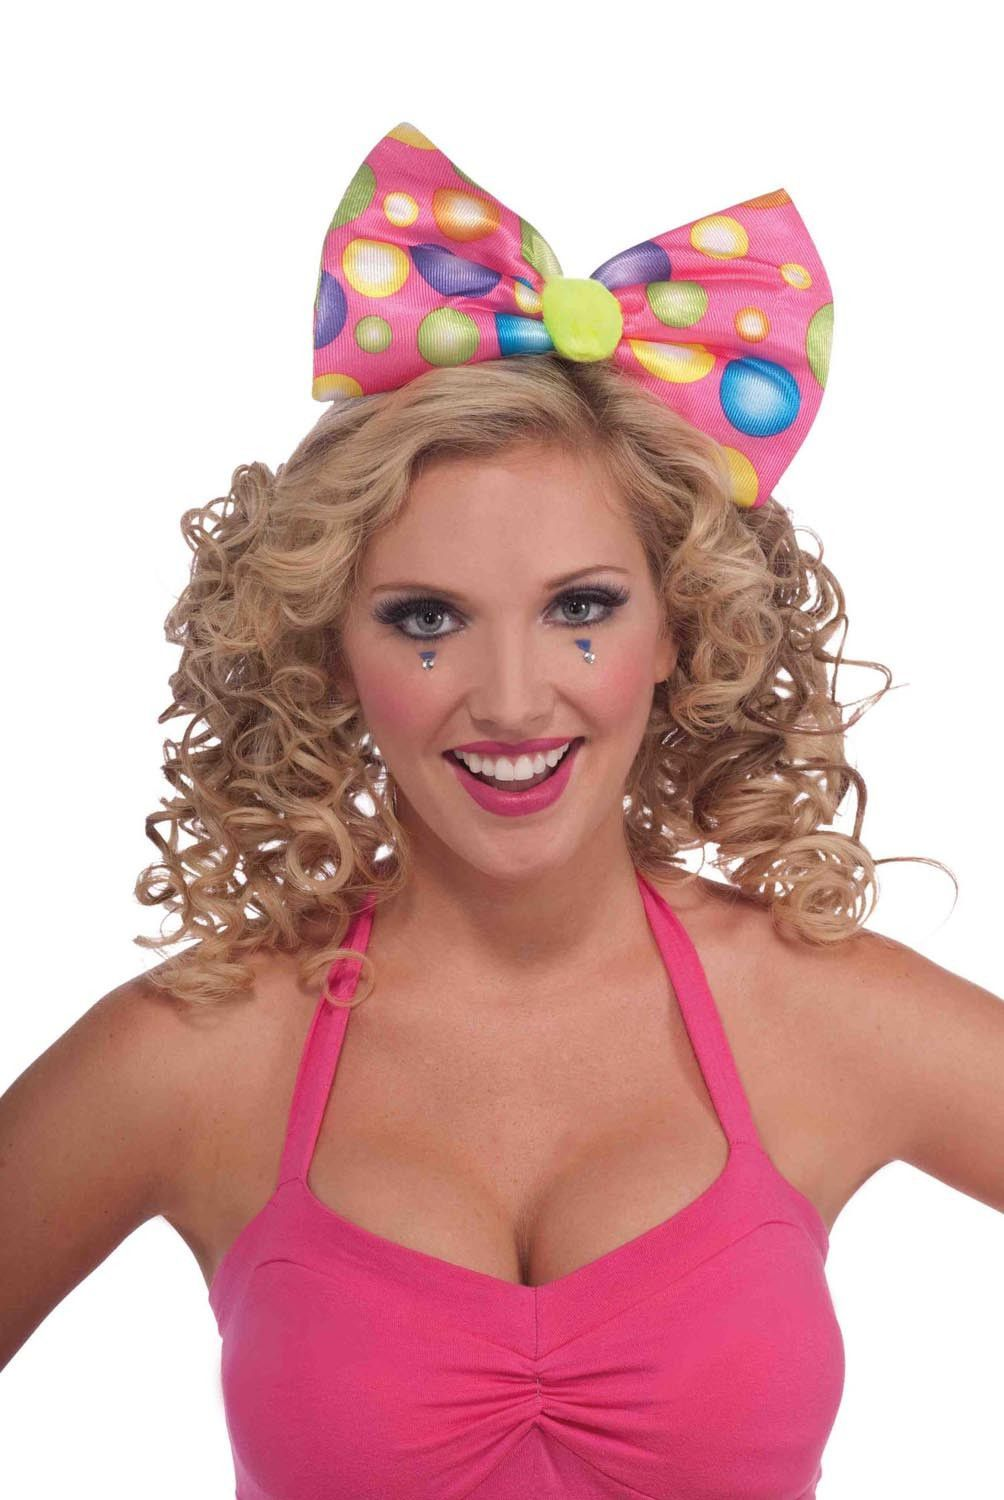 9b48beab6f475 Circus Sweetie Bow Headband Costume Accessory   Products   Pink ...